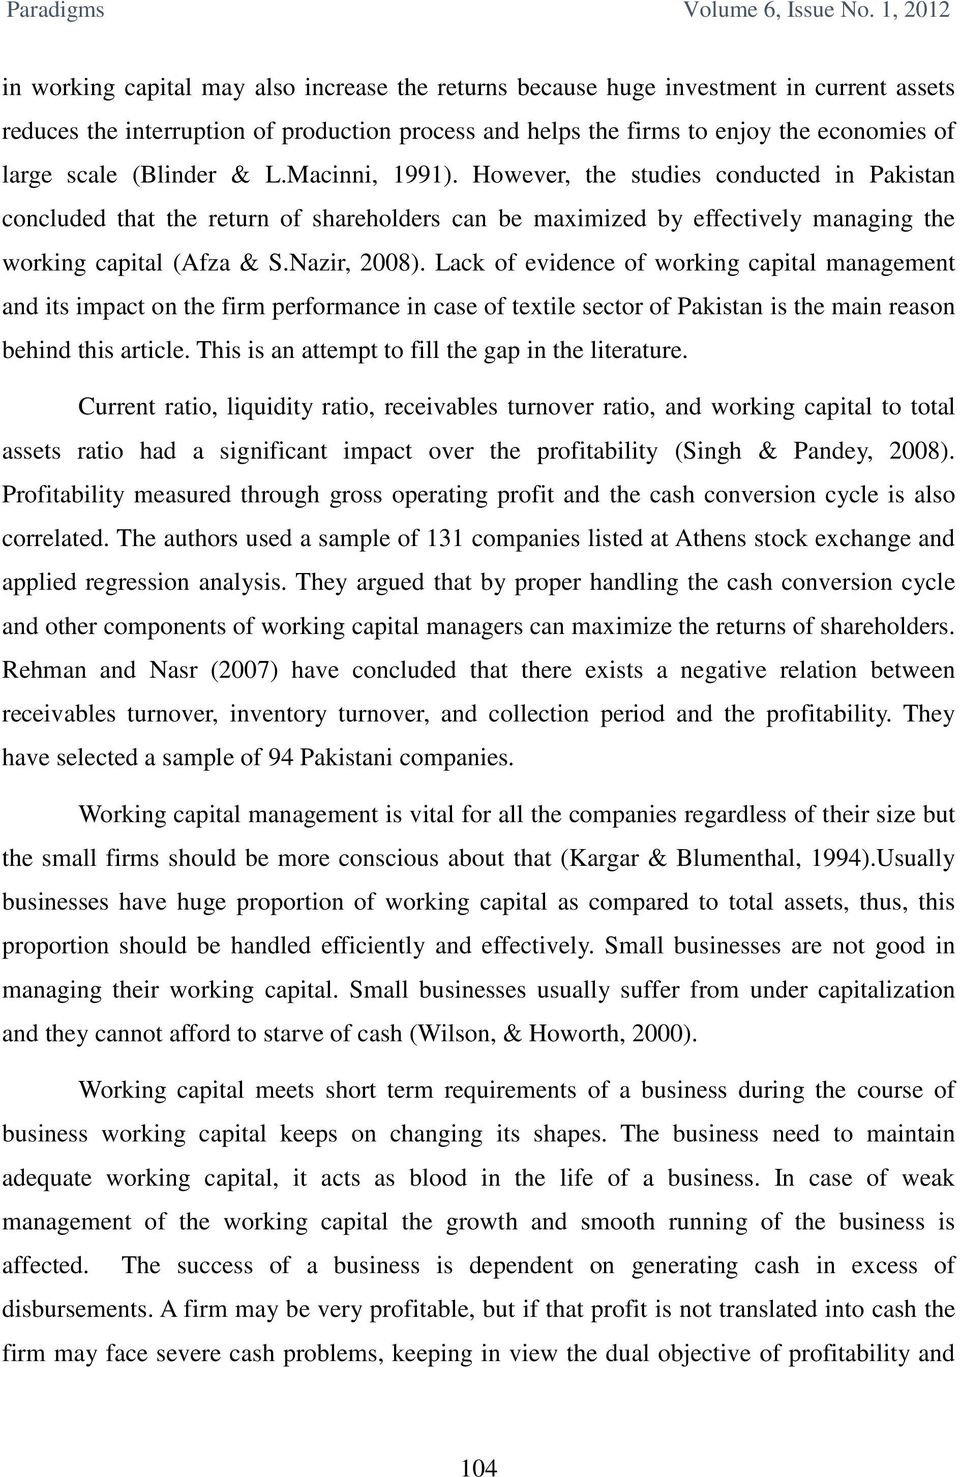 Lack of evidence of working capital management and its impact on the firm performance in case of textile sector of Pakistan is the main reason behind this article.